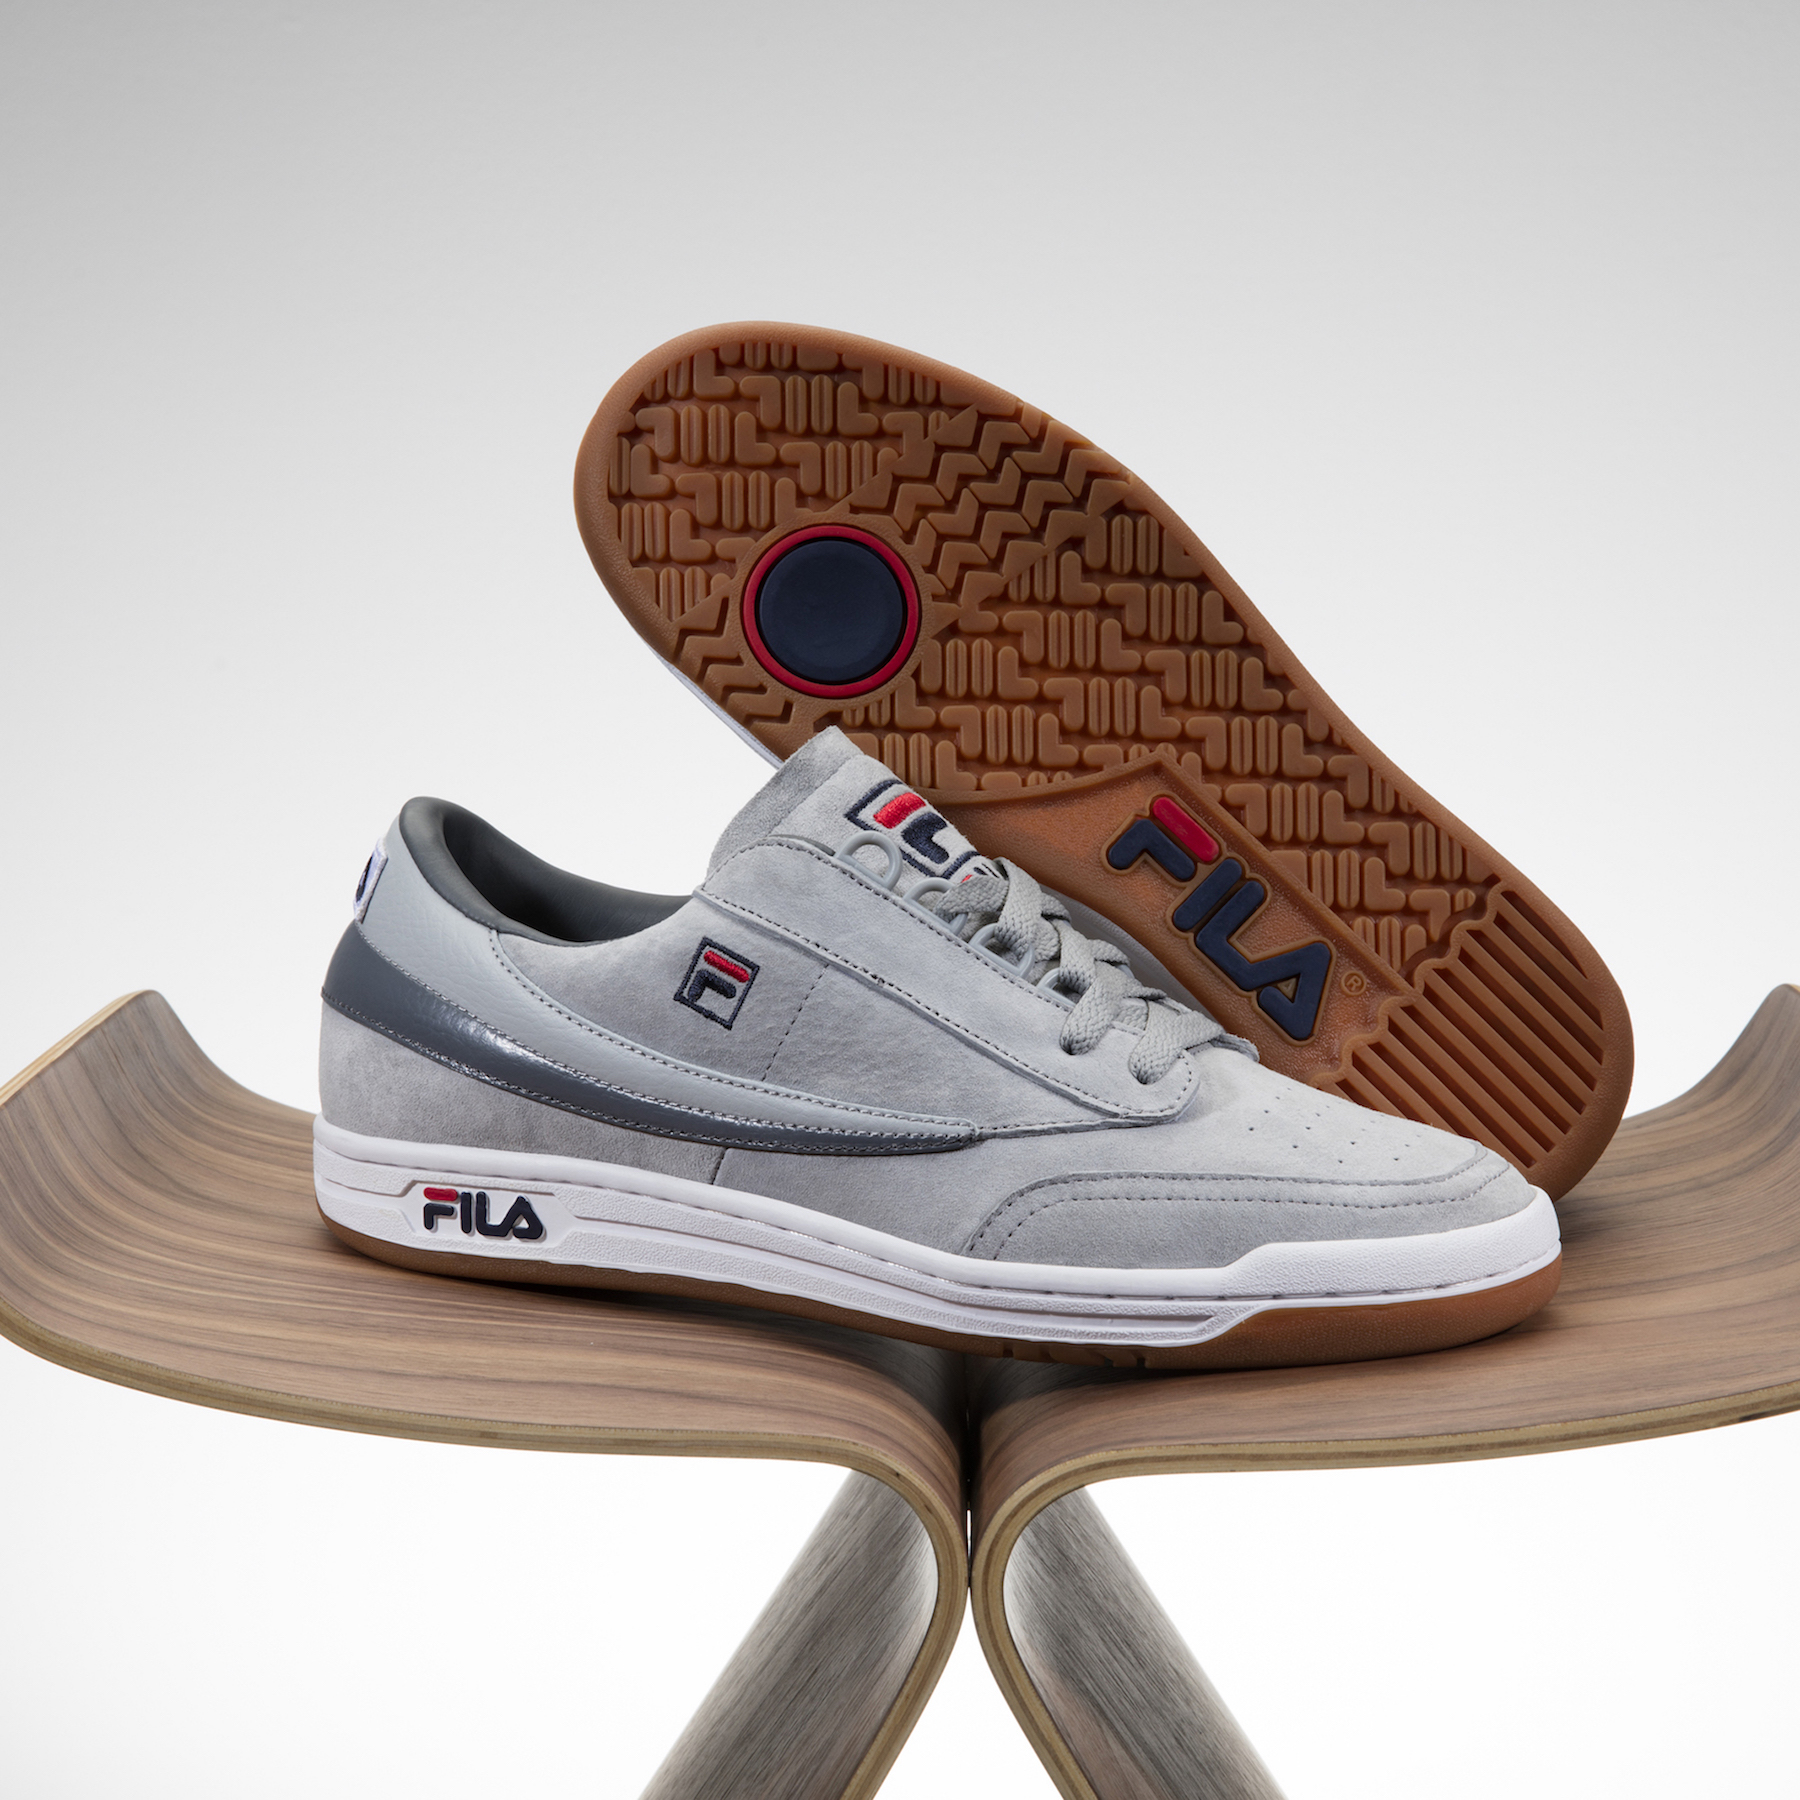 fila original tennis concrete gum pack 5